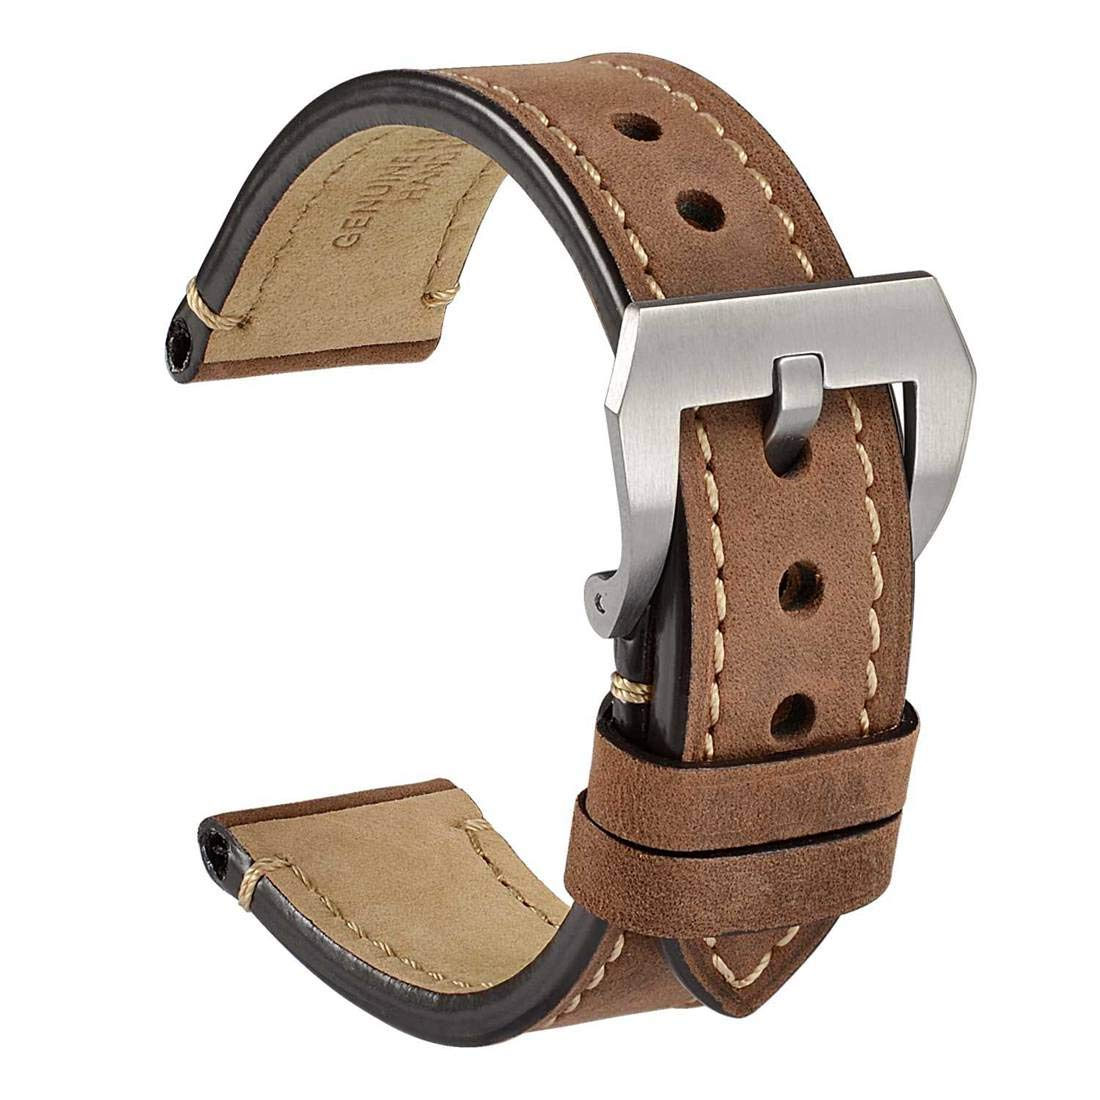 WOCCI 22mm Watch Band,Saddle Style Crazy Horse Leather Watch Strap (Dark Brown)